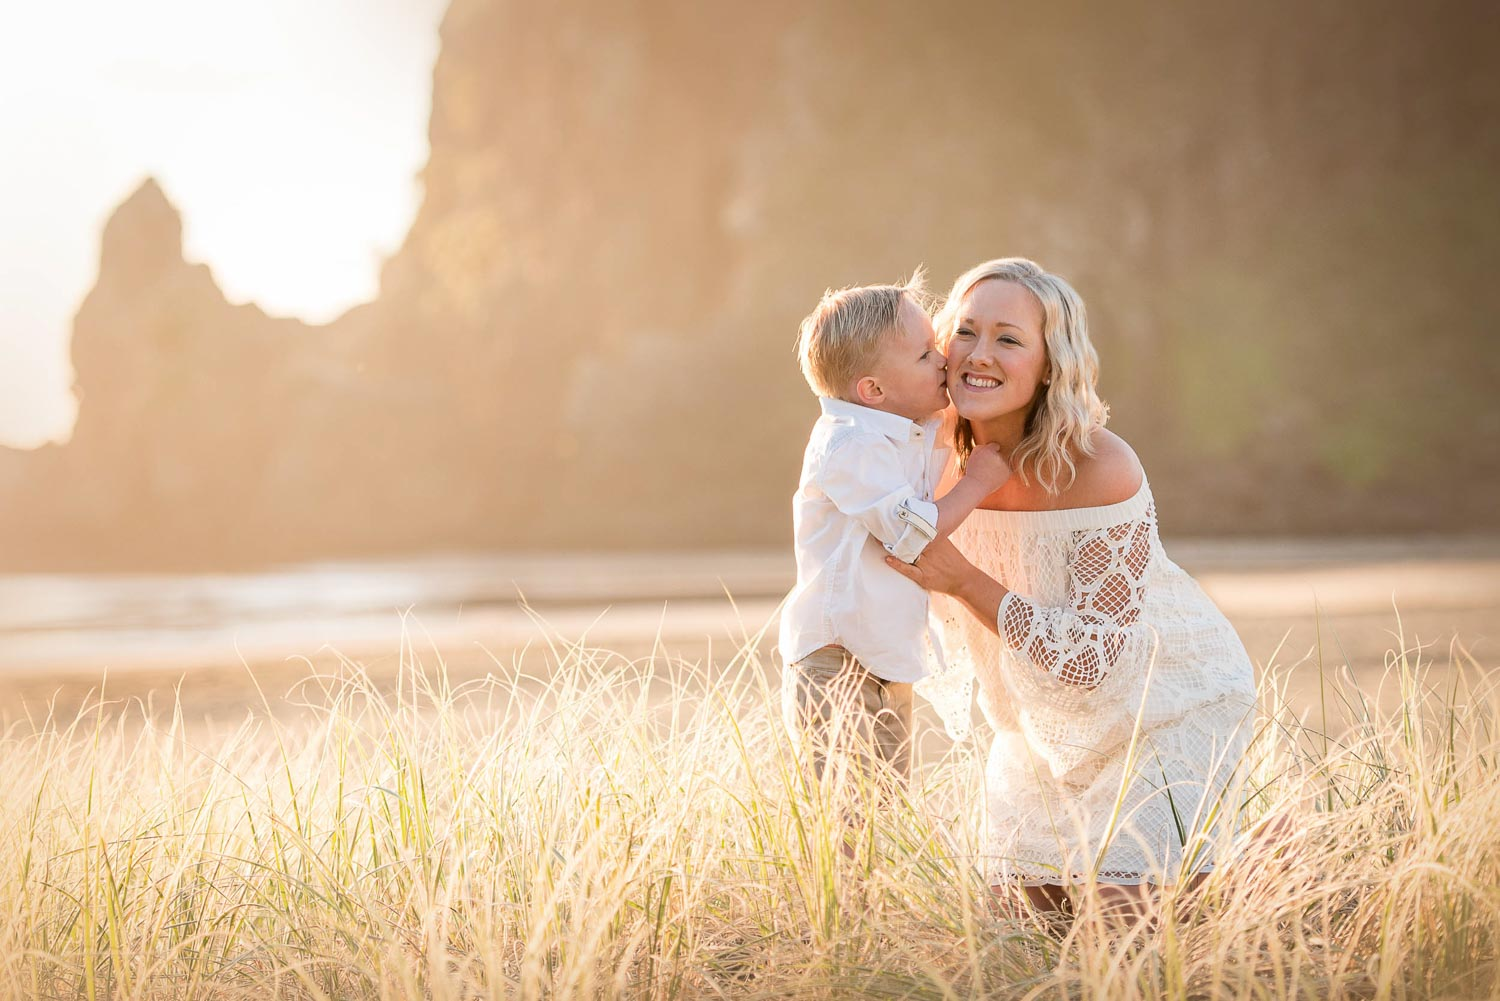 family photography at beach by siobhan kelly photography